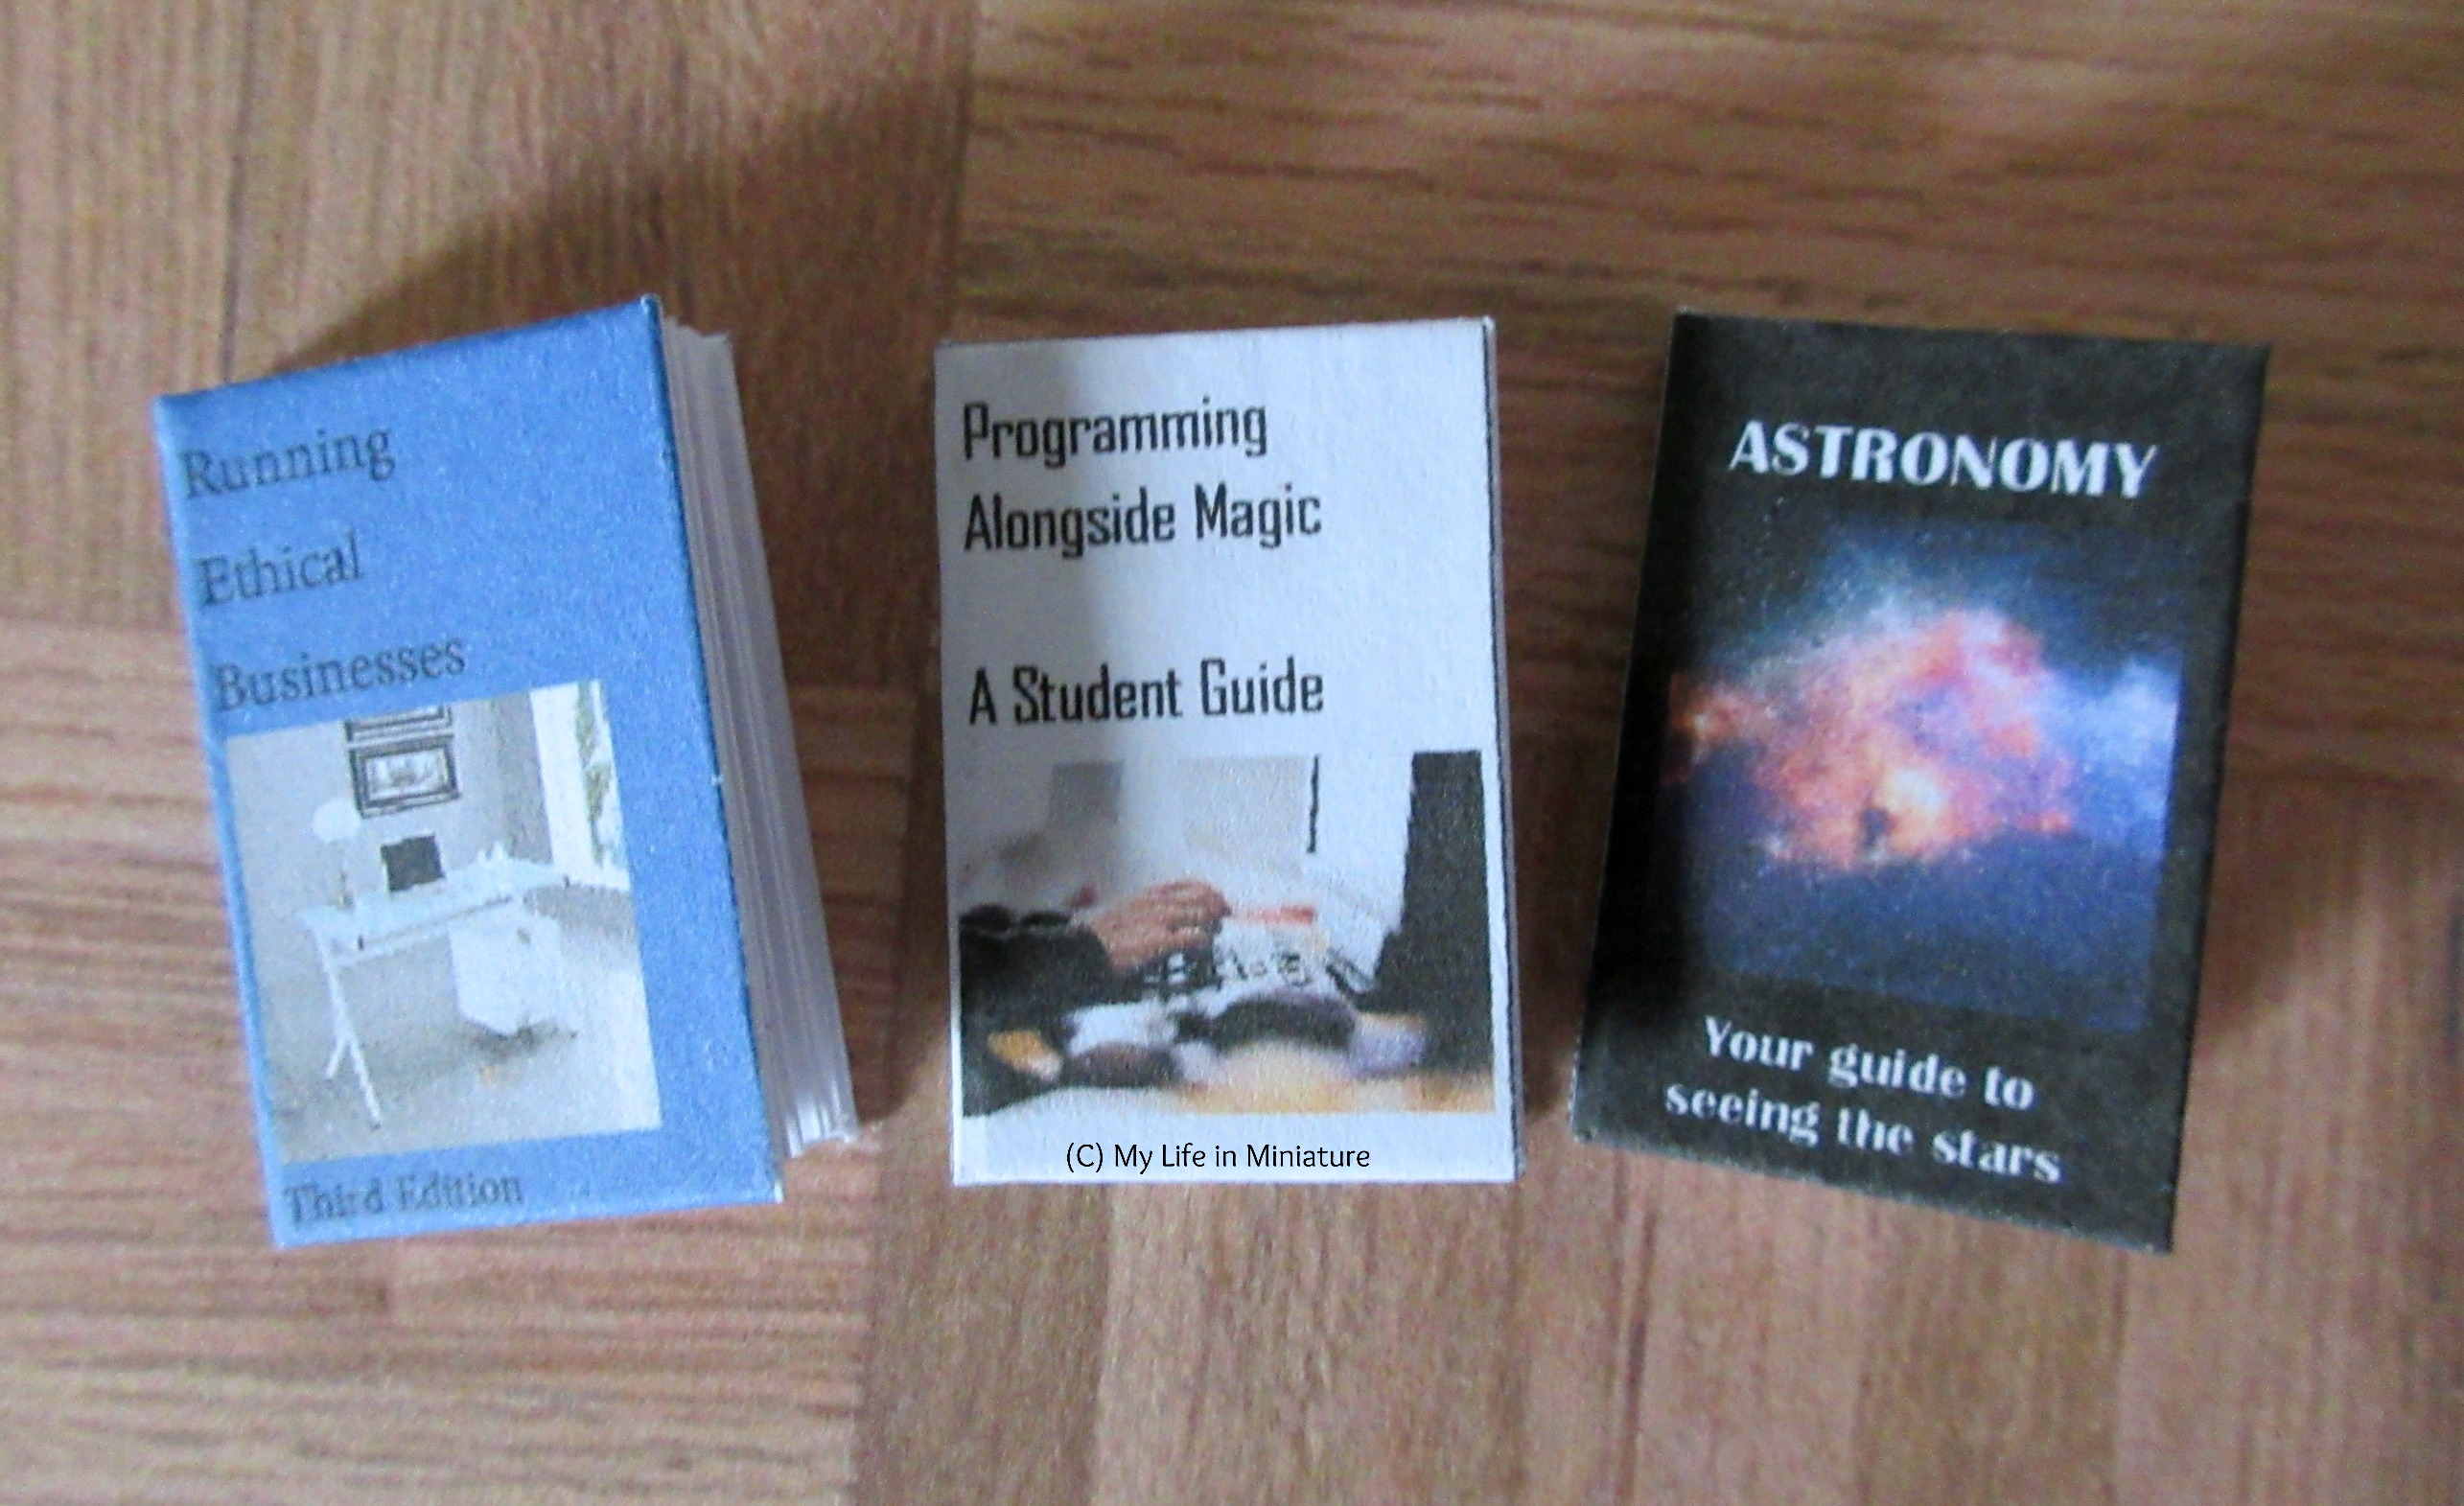 Three miniature textbooks sit on a wood parquet background. Left to right: 'Running Ethical Businesses', 3rd edition; 'Programming Alongside Magic: A Student Guide'; and 'Astronomy: Your Guide to Seeing the Stars'.